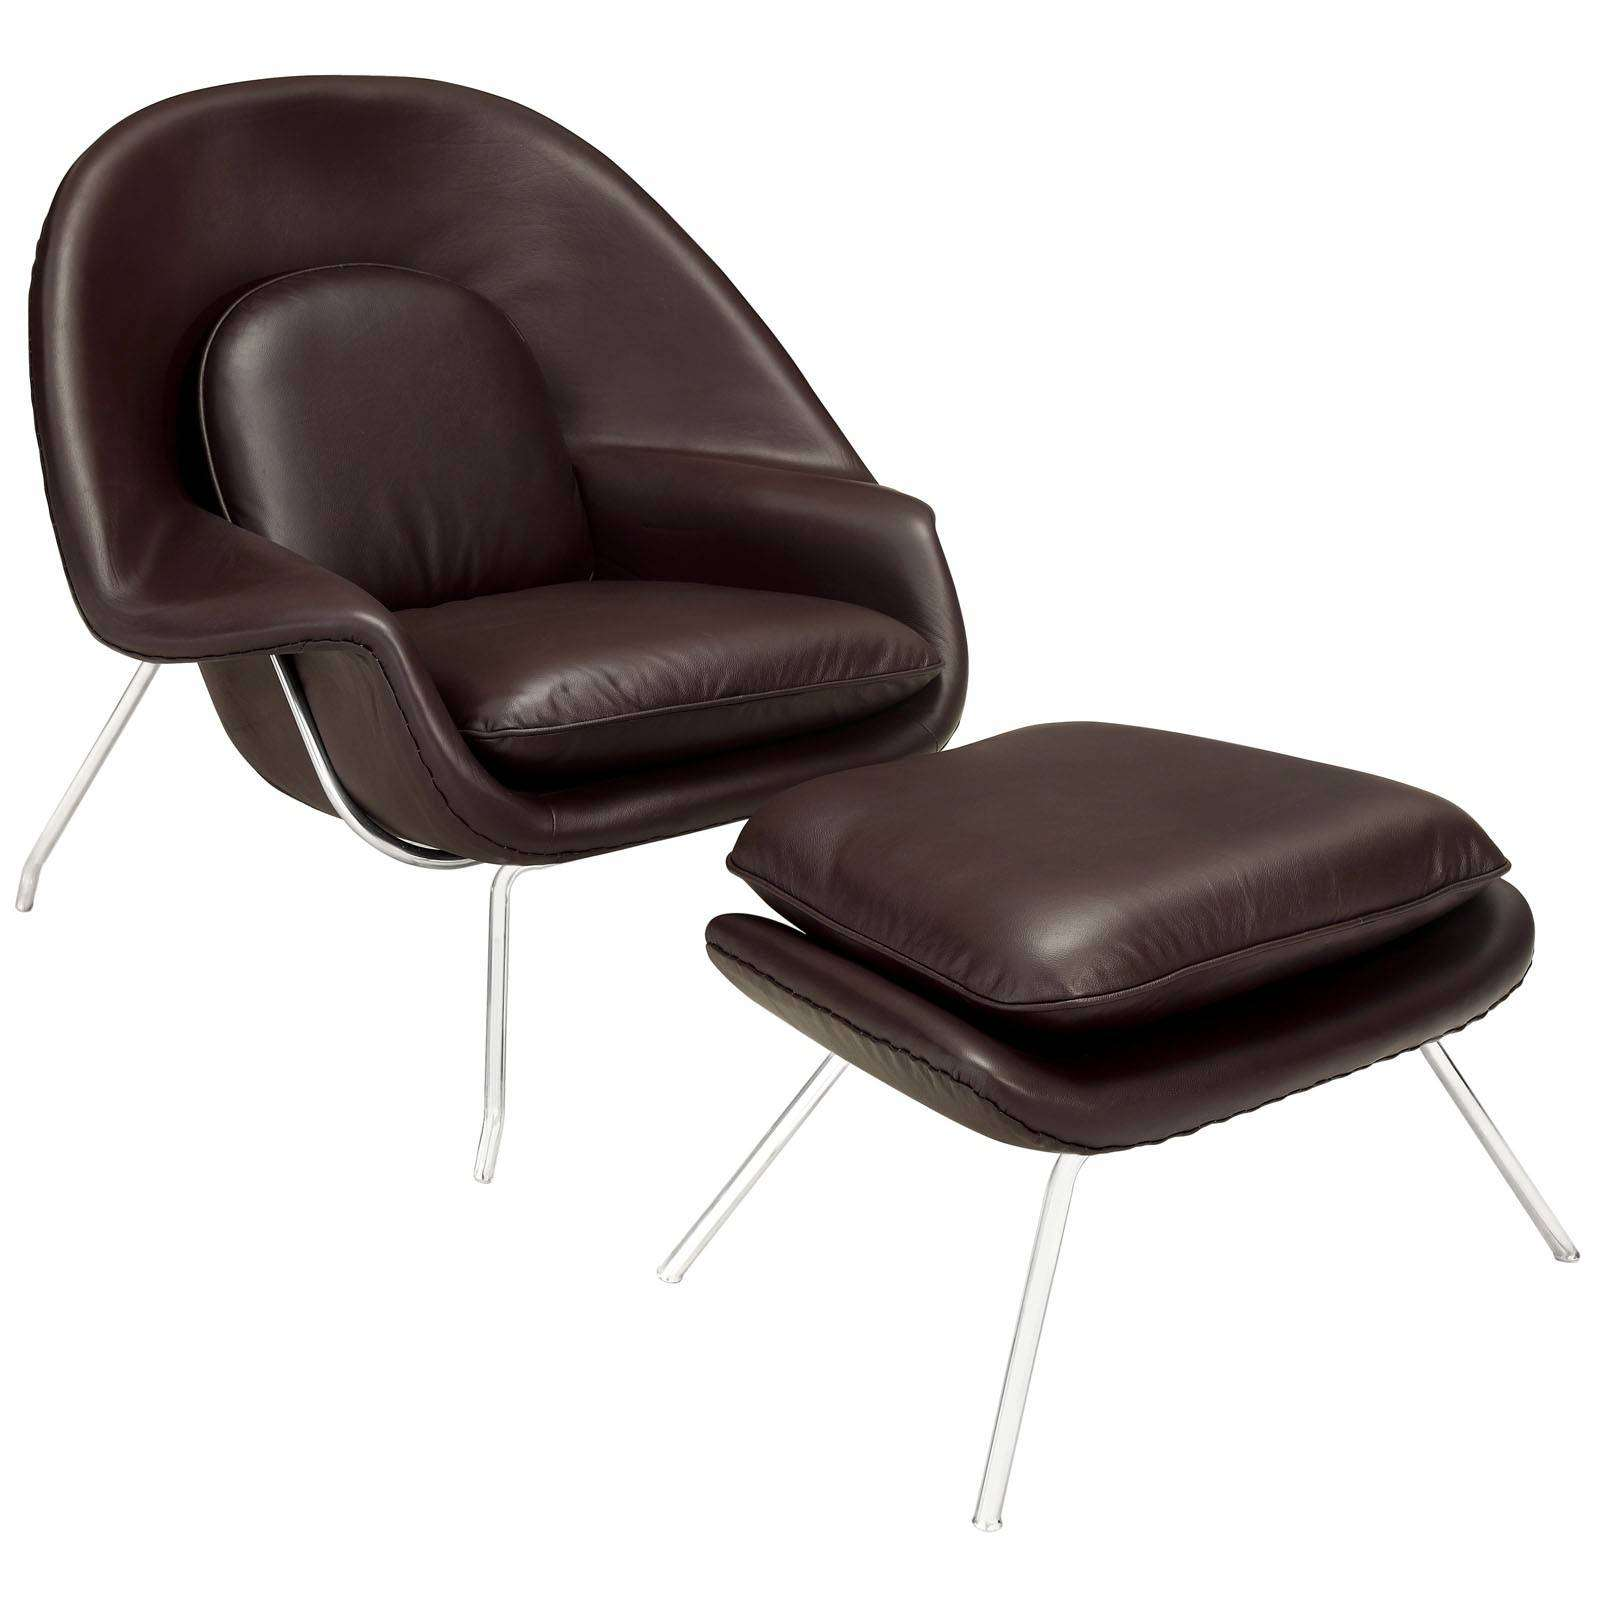 Eero Saarinen Womb Lounge Chair Ottoman